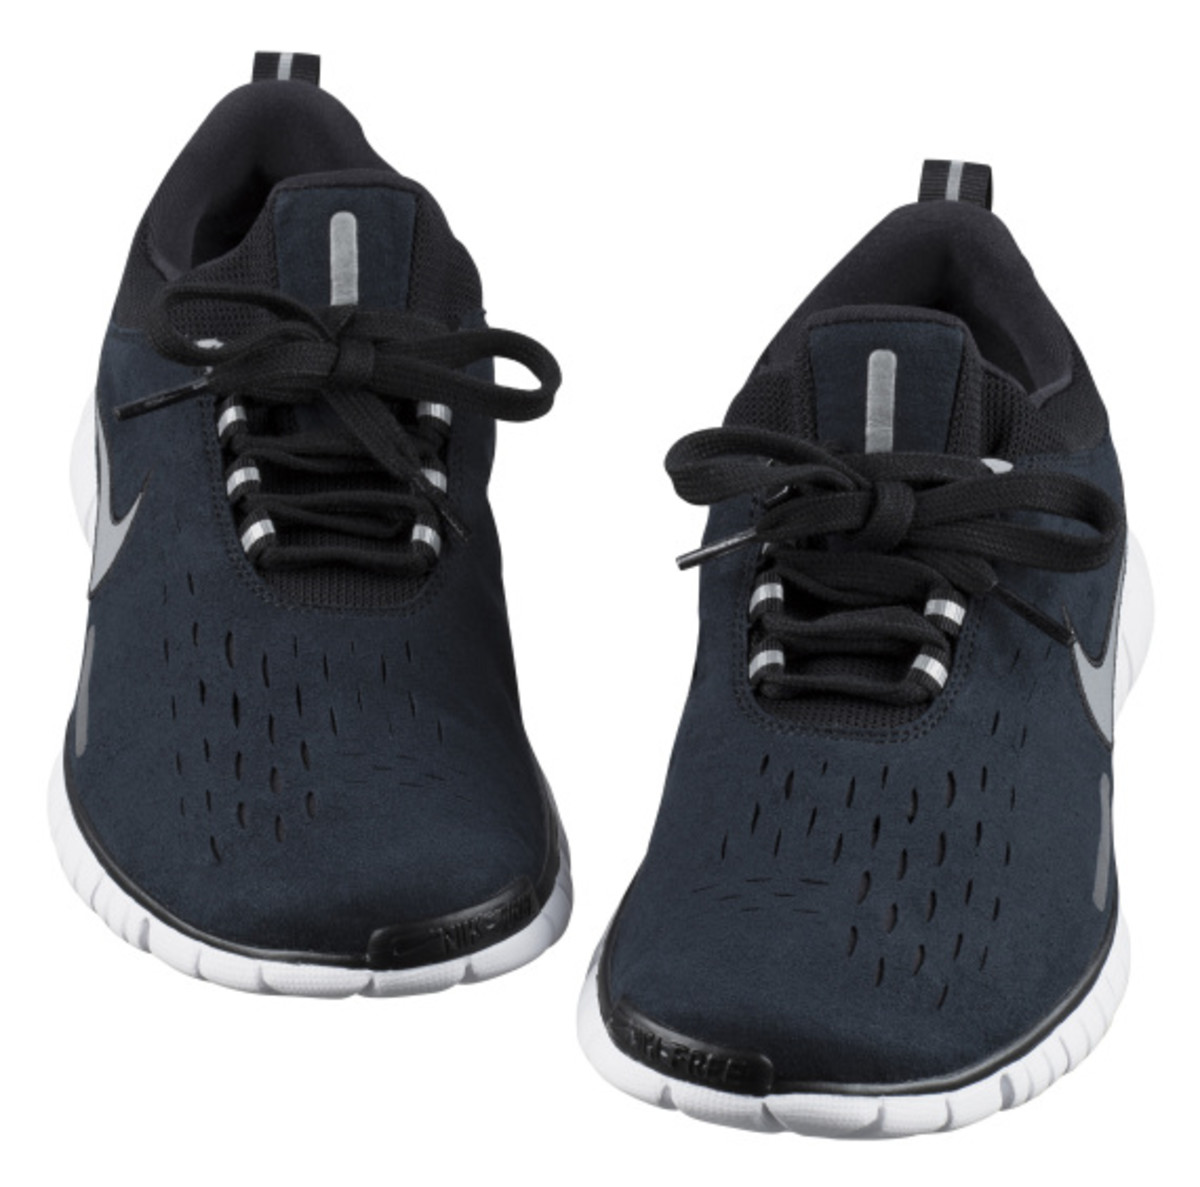 a-p-c-nike-free-fall-winter-2014-10